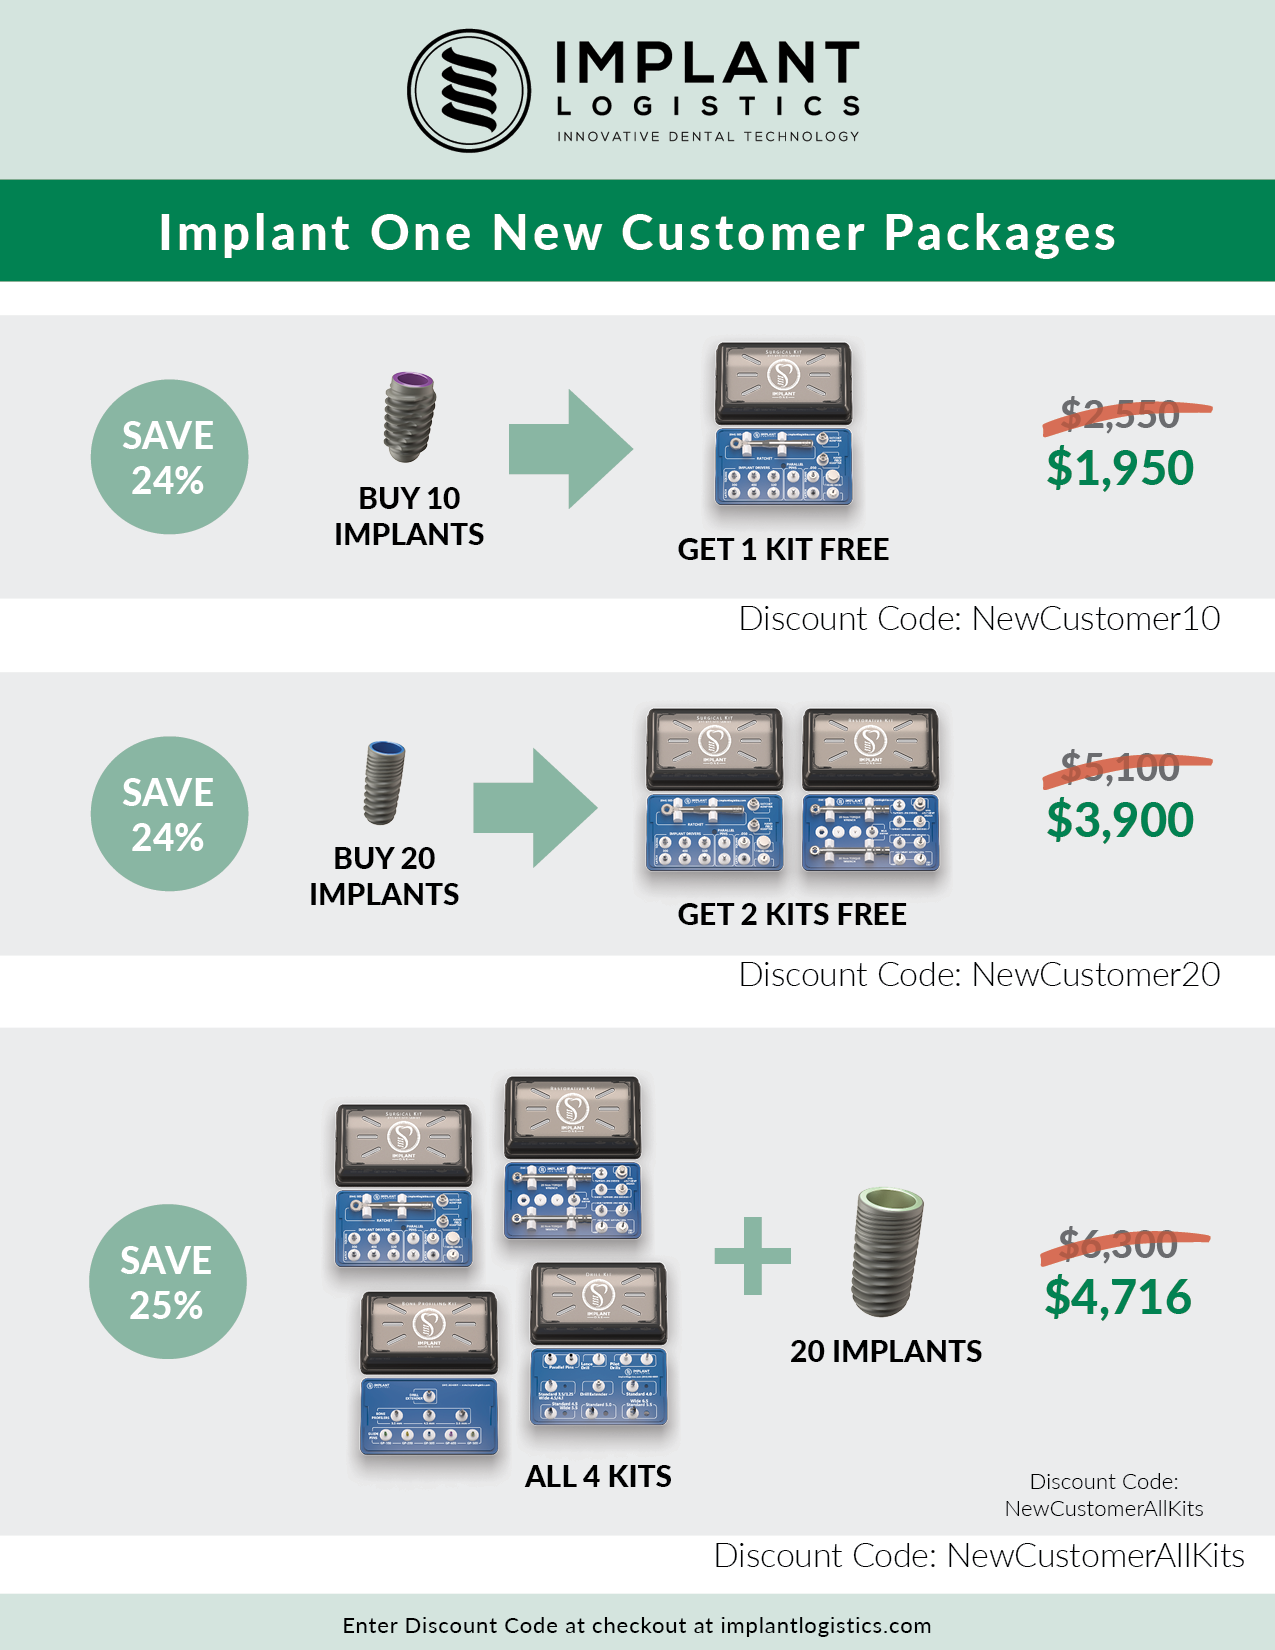 Implant One new customer discounts